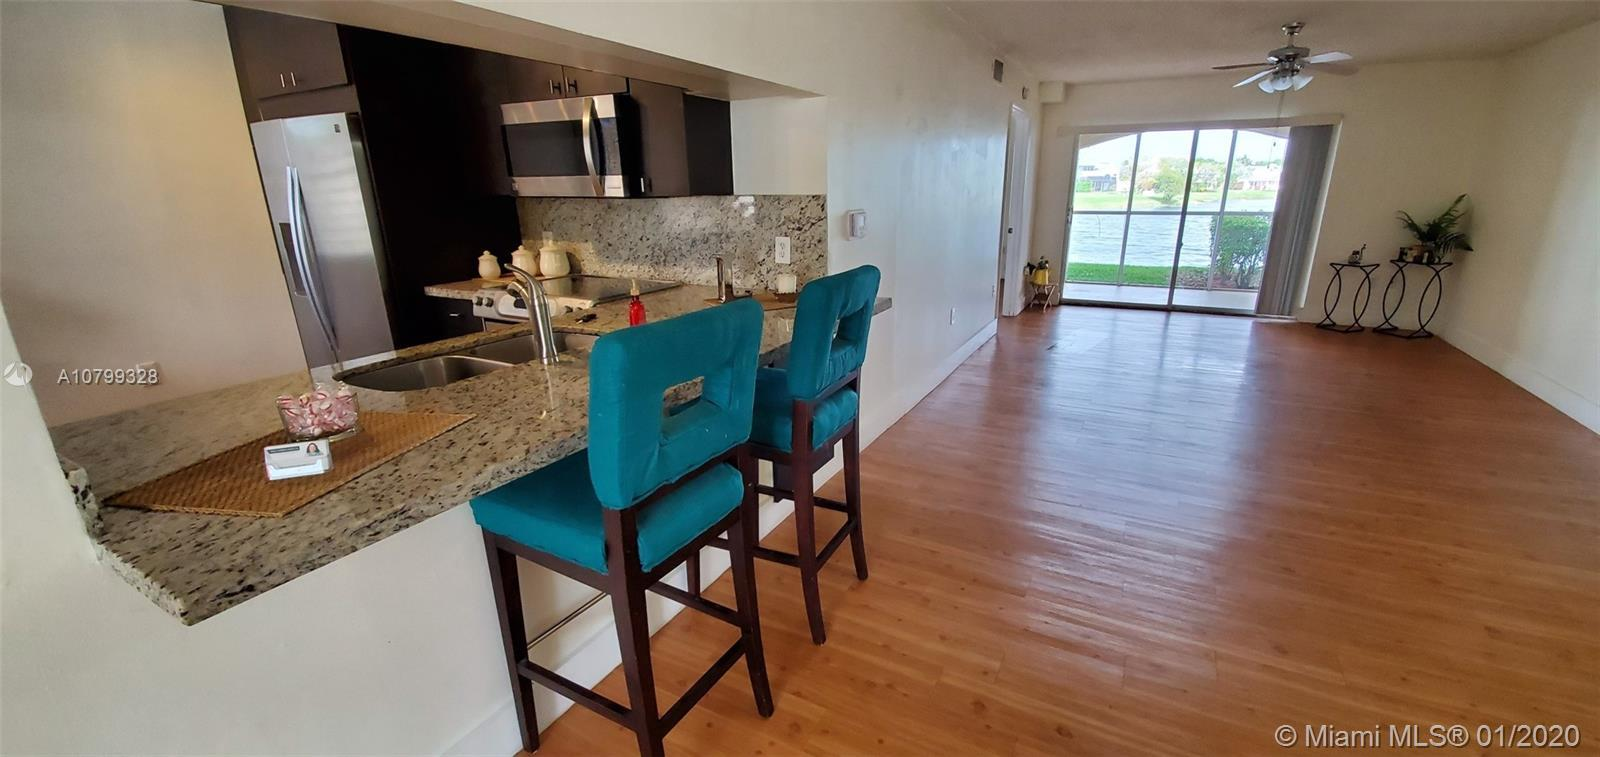 Gorgeous 2 beds & 2 baths first-floor apartment. Remodeled, laminated wood floors, screen patio, mod